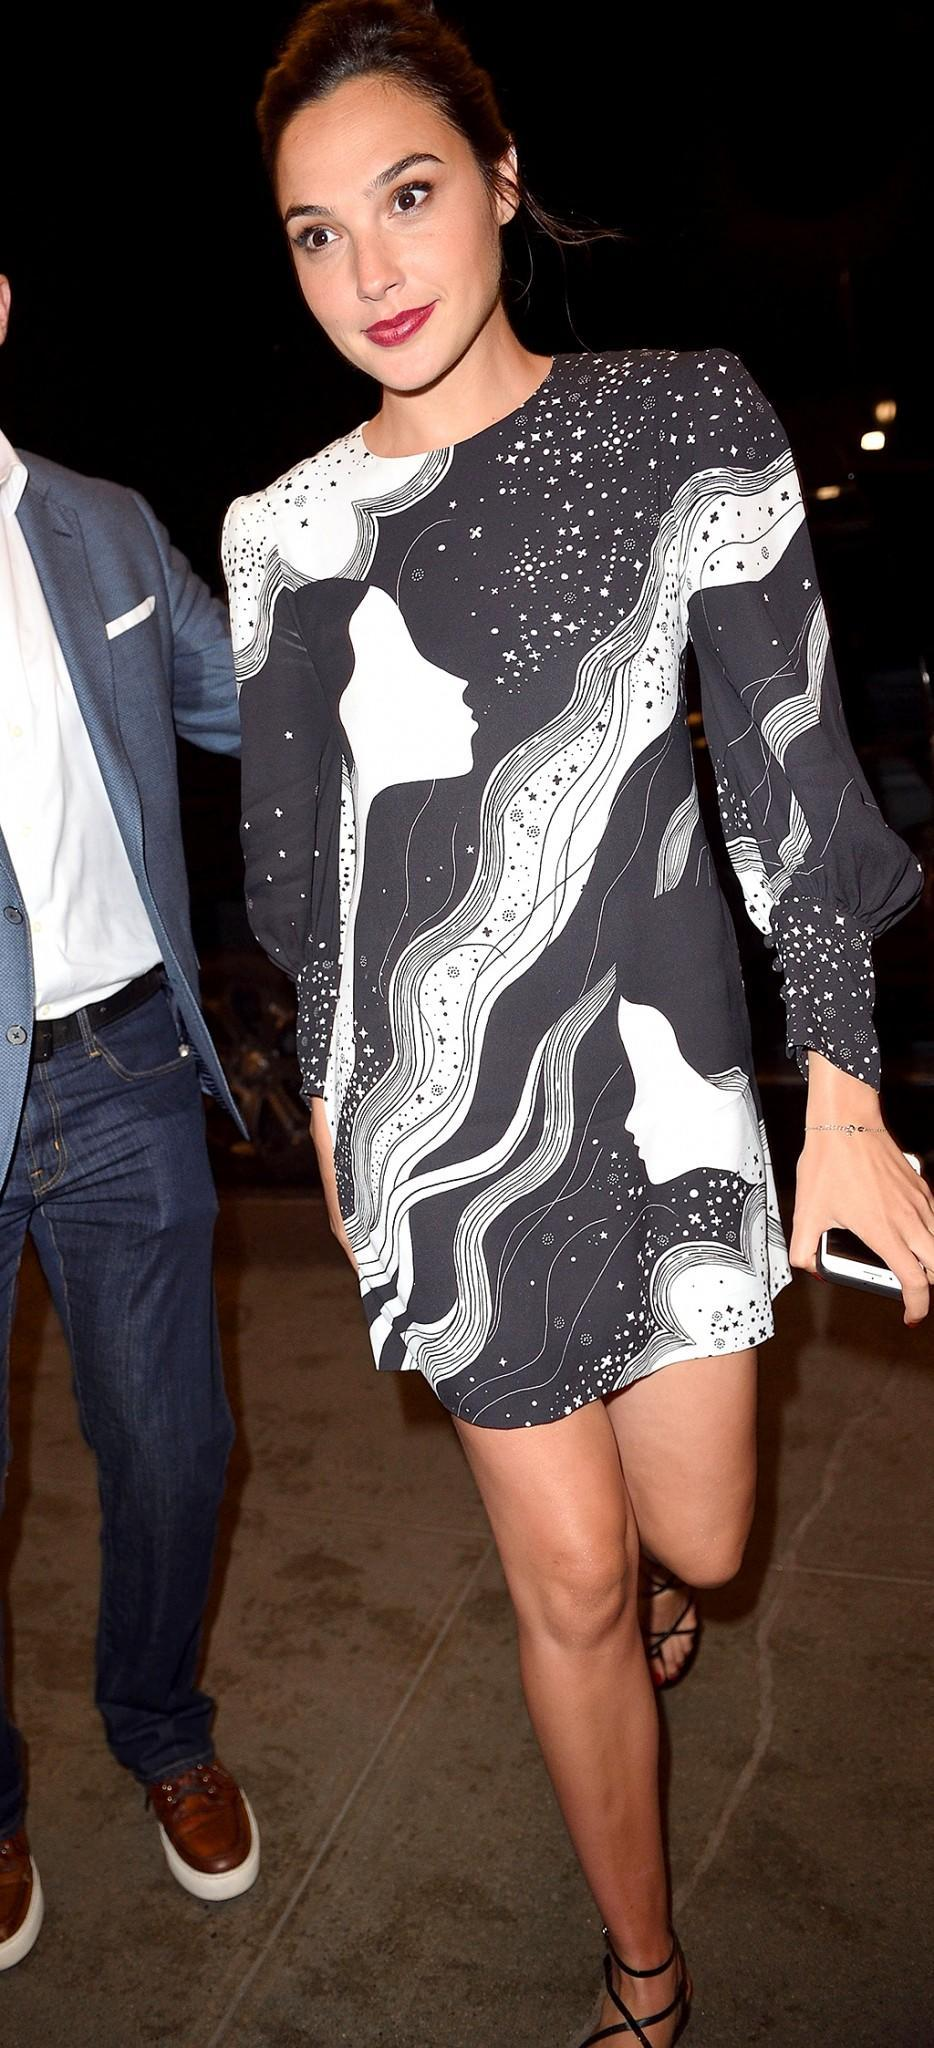 <p>Two days ahead of the movie's official release, Gadot created a frenzy when she attended a screening of the superhero flick in a black-and-white minidress that showed off all the time she had spent in the gym preparing for the role. She worked out six days a week for nine months leading up to shooting. Whew! (Photo: BACKGRID) </p>